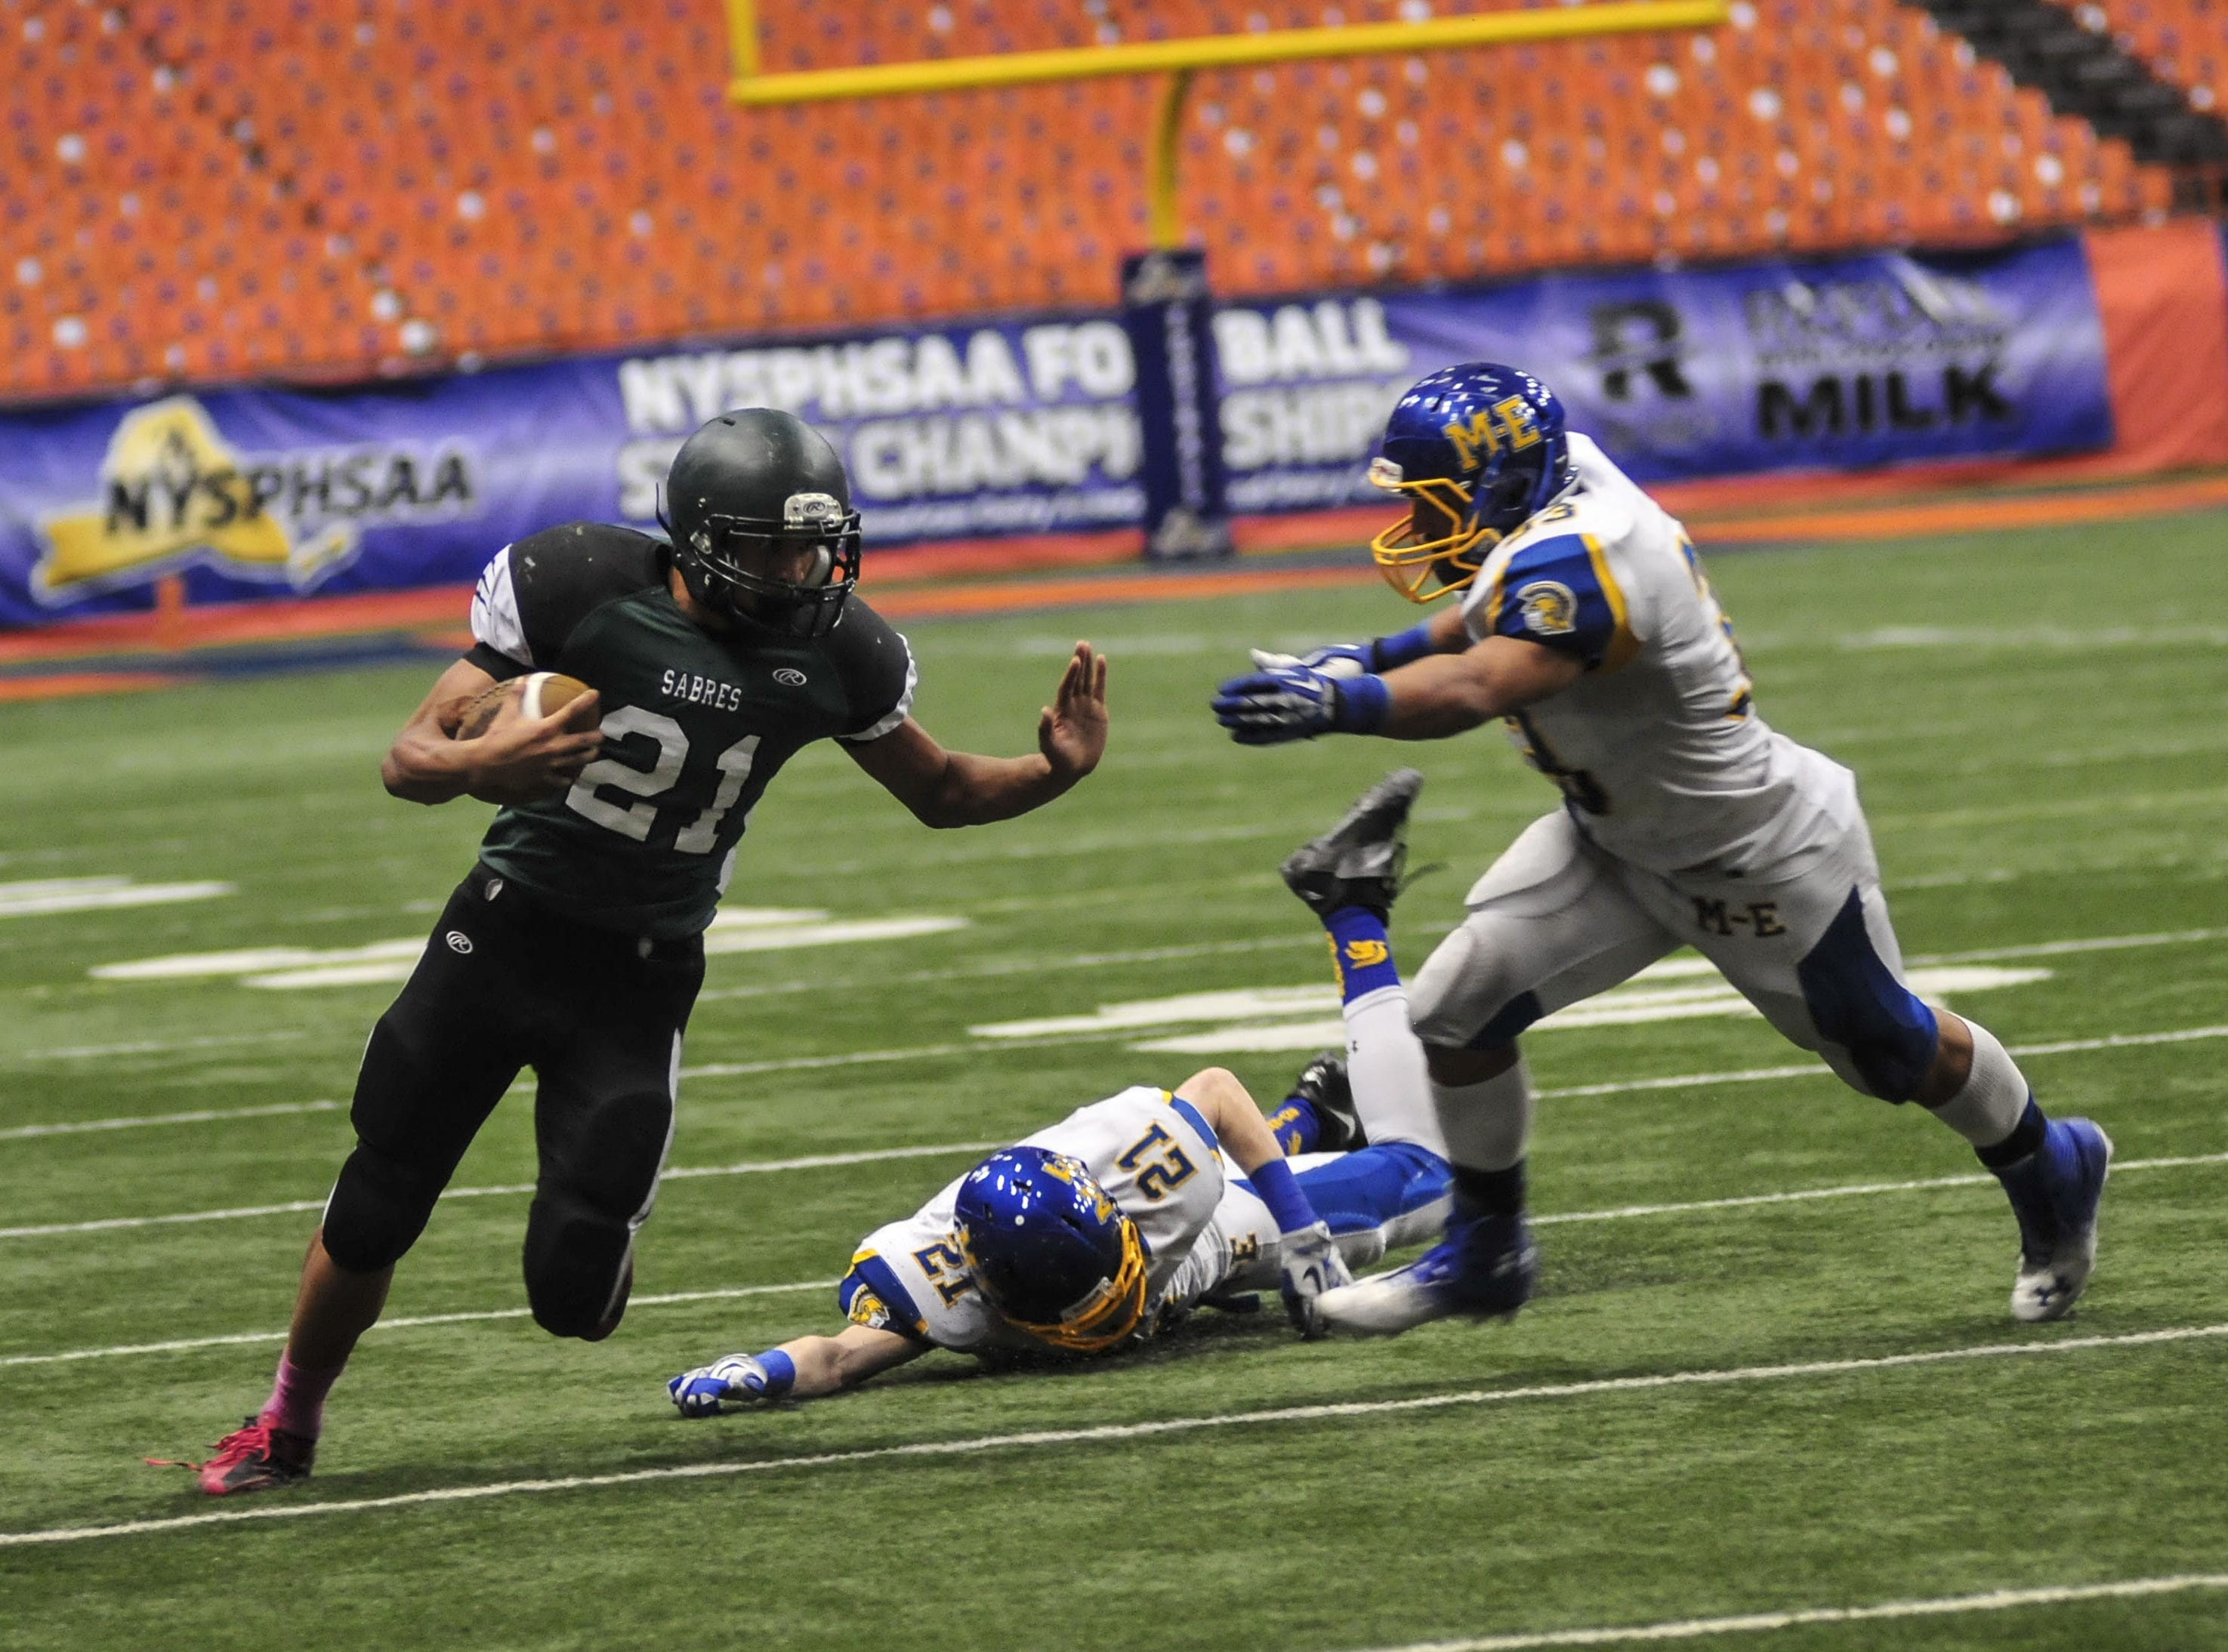 Schalmont's Devon Willis gets past Maine-Endwell's Michael Palmer but is tackled by Darnell Woolfolk during the 2013 New York State Public High School Athletic Association Football Class B Championship at the Carrier Dome in Syracuse on Sunday, Dec. 1.